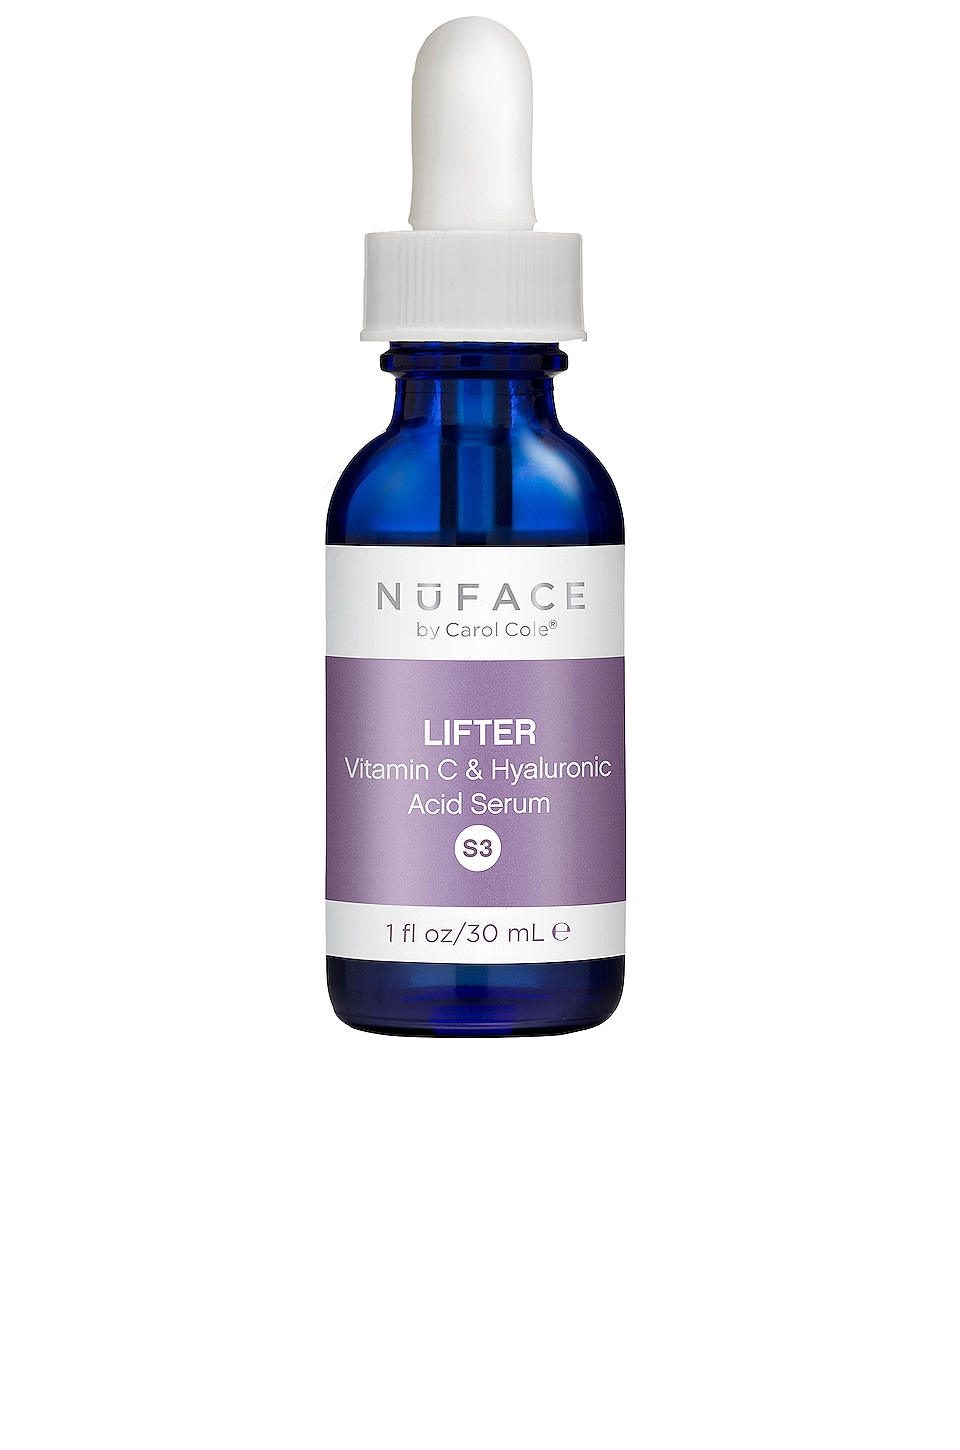 NuFACE SÉRUM À LA VITAMINE C LIFTER